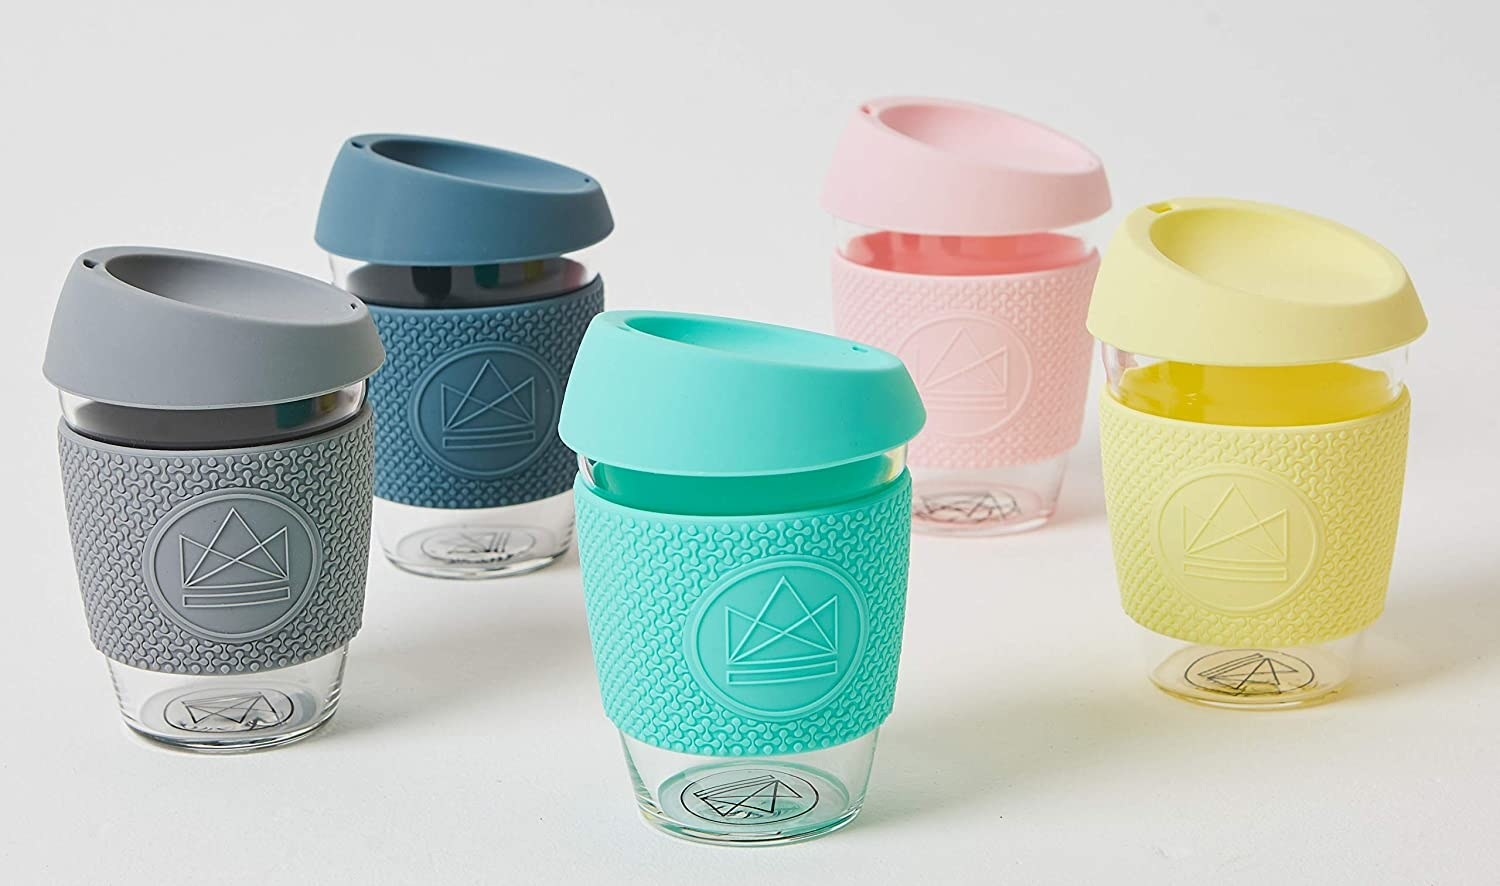 Five small glass coffee cups with silicone lids and sleeves on them